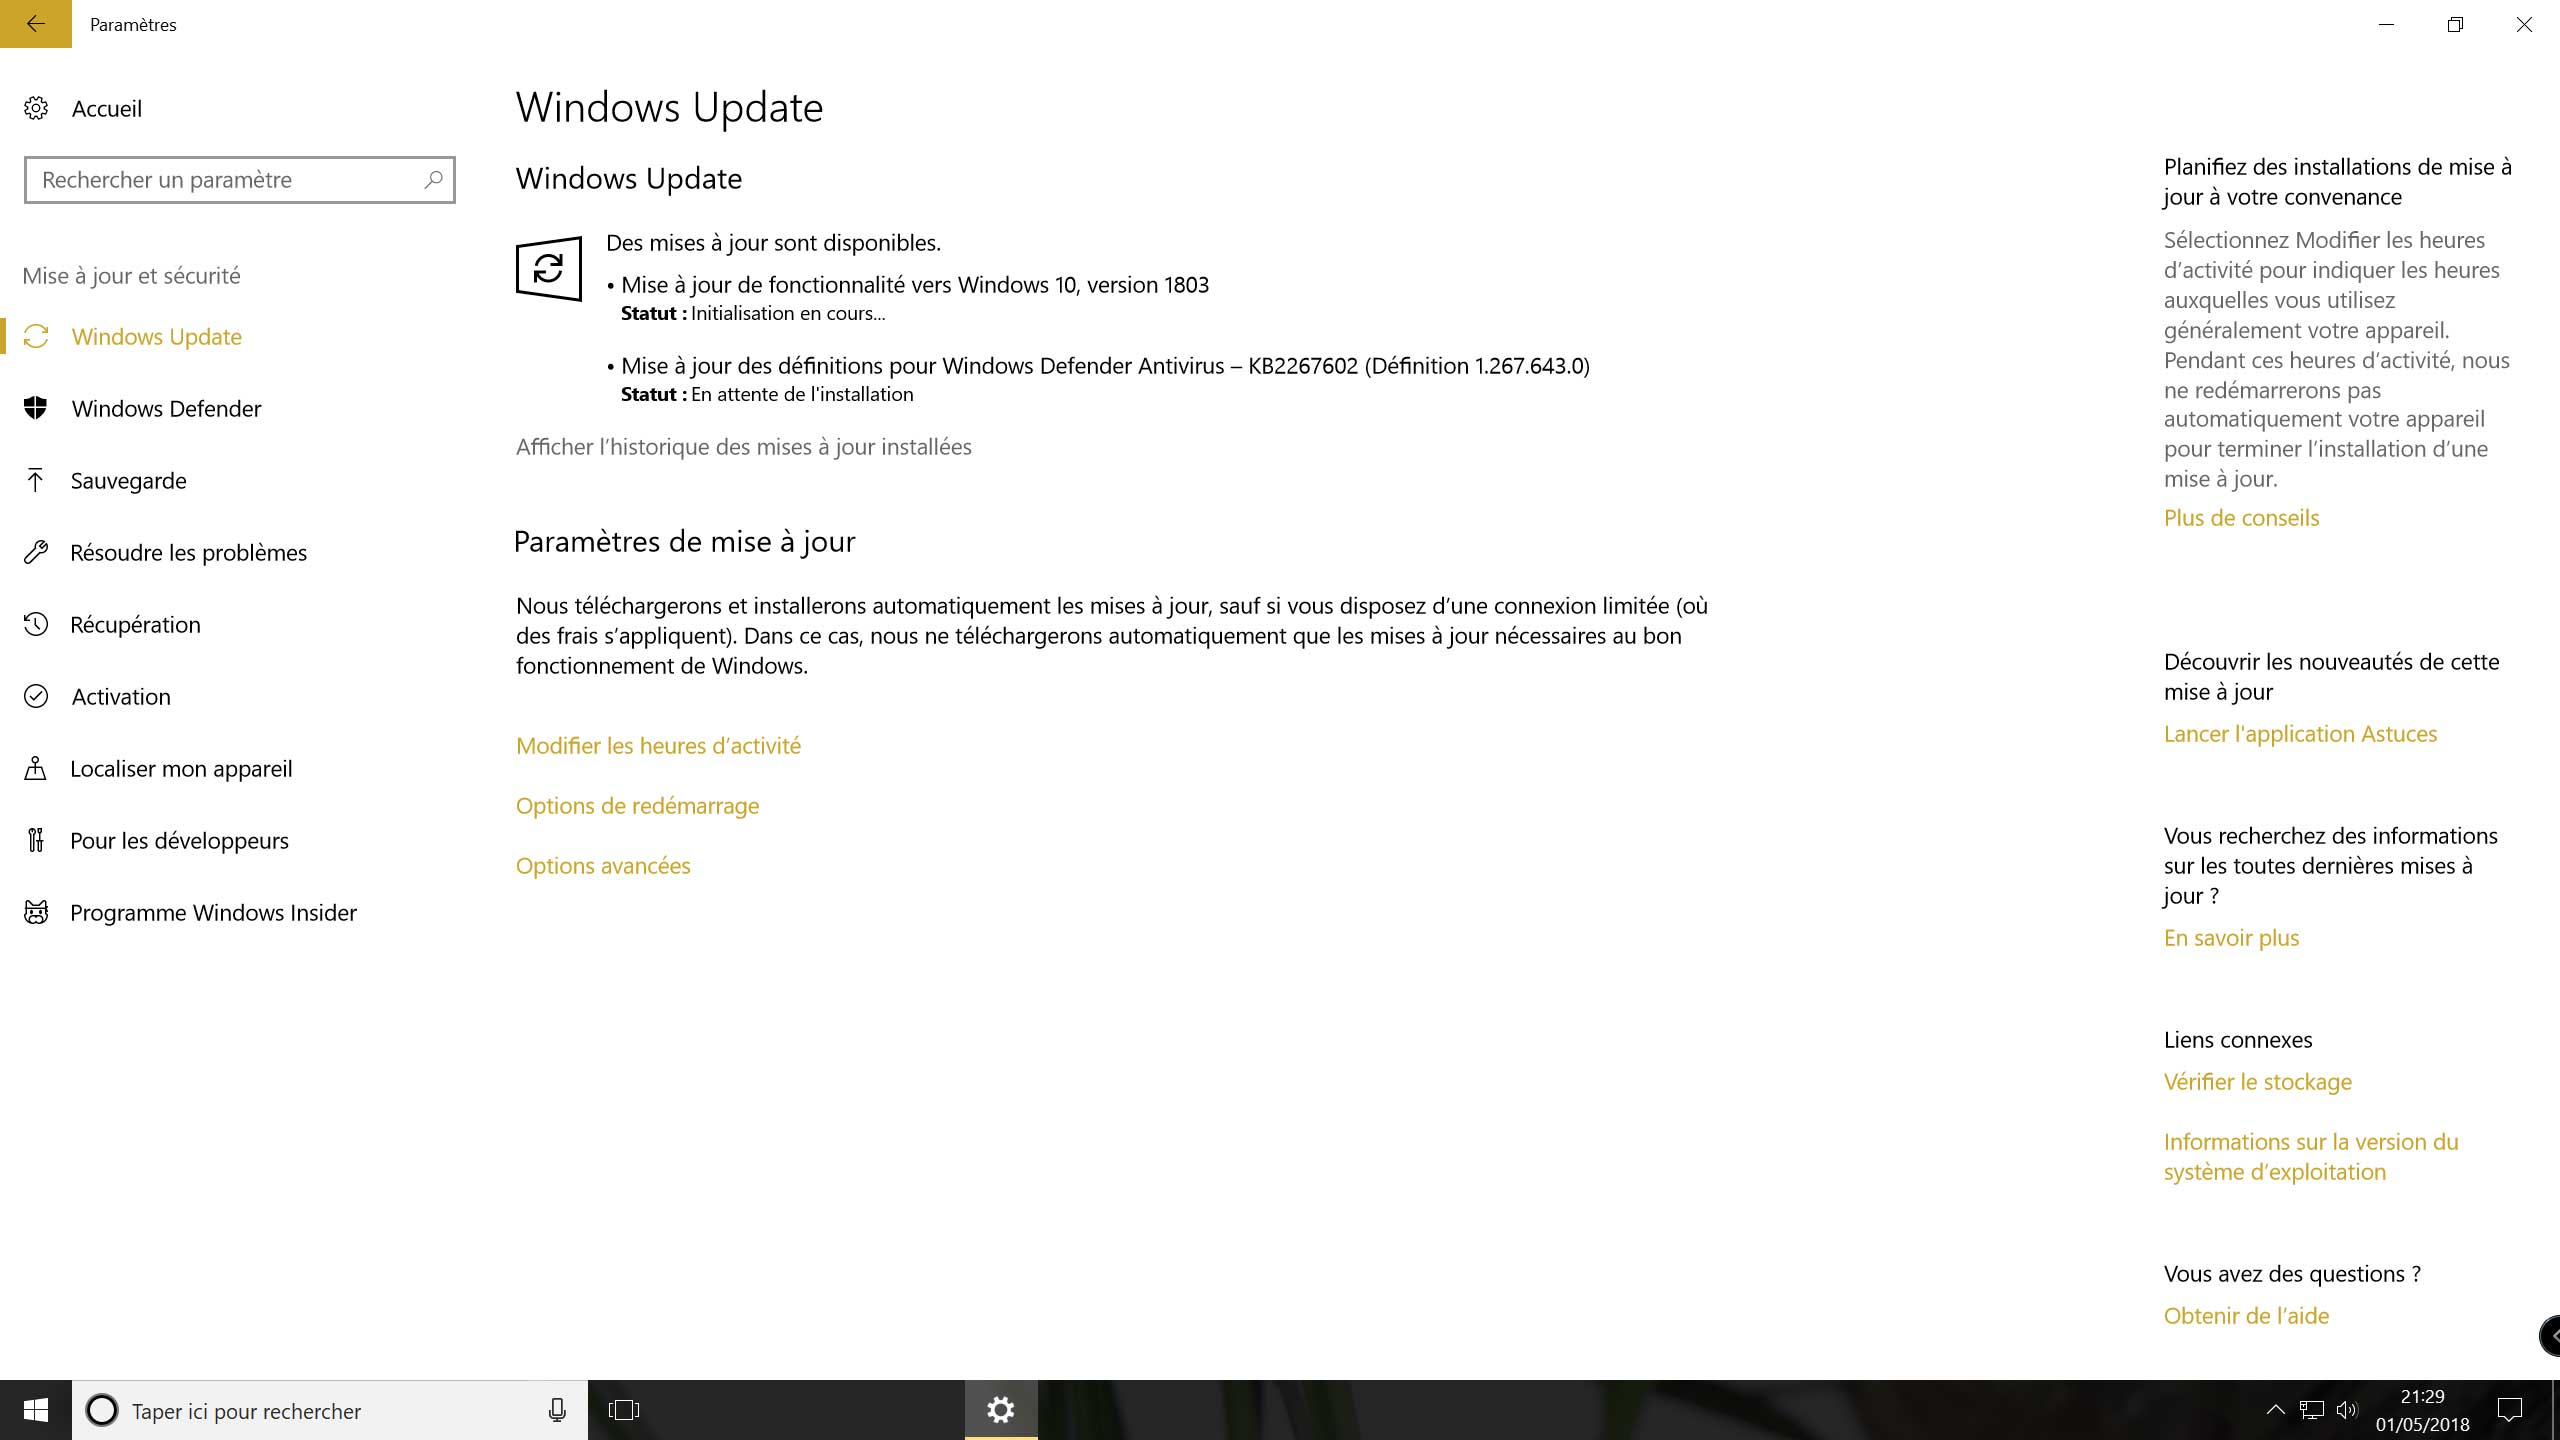 Windows 10 v1803 - Windows Update